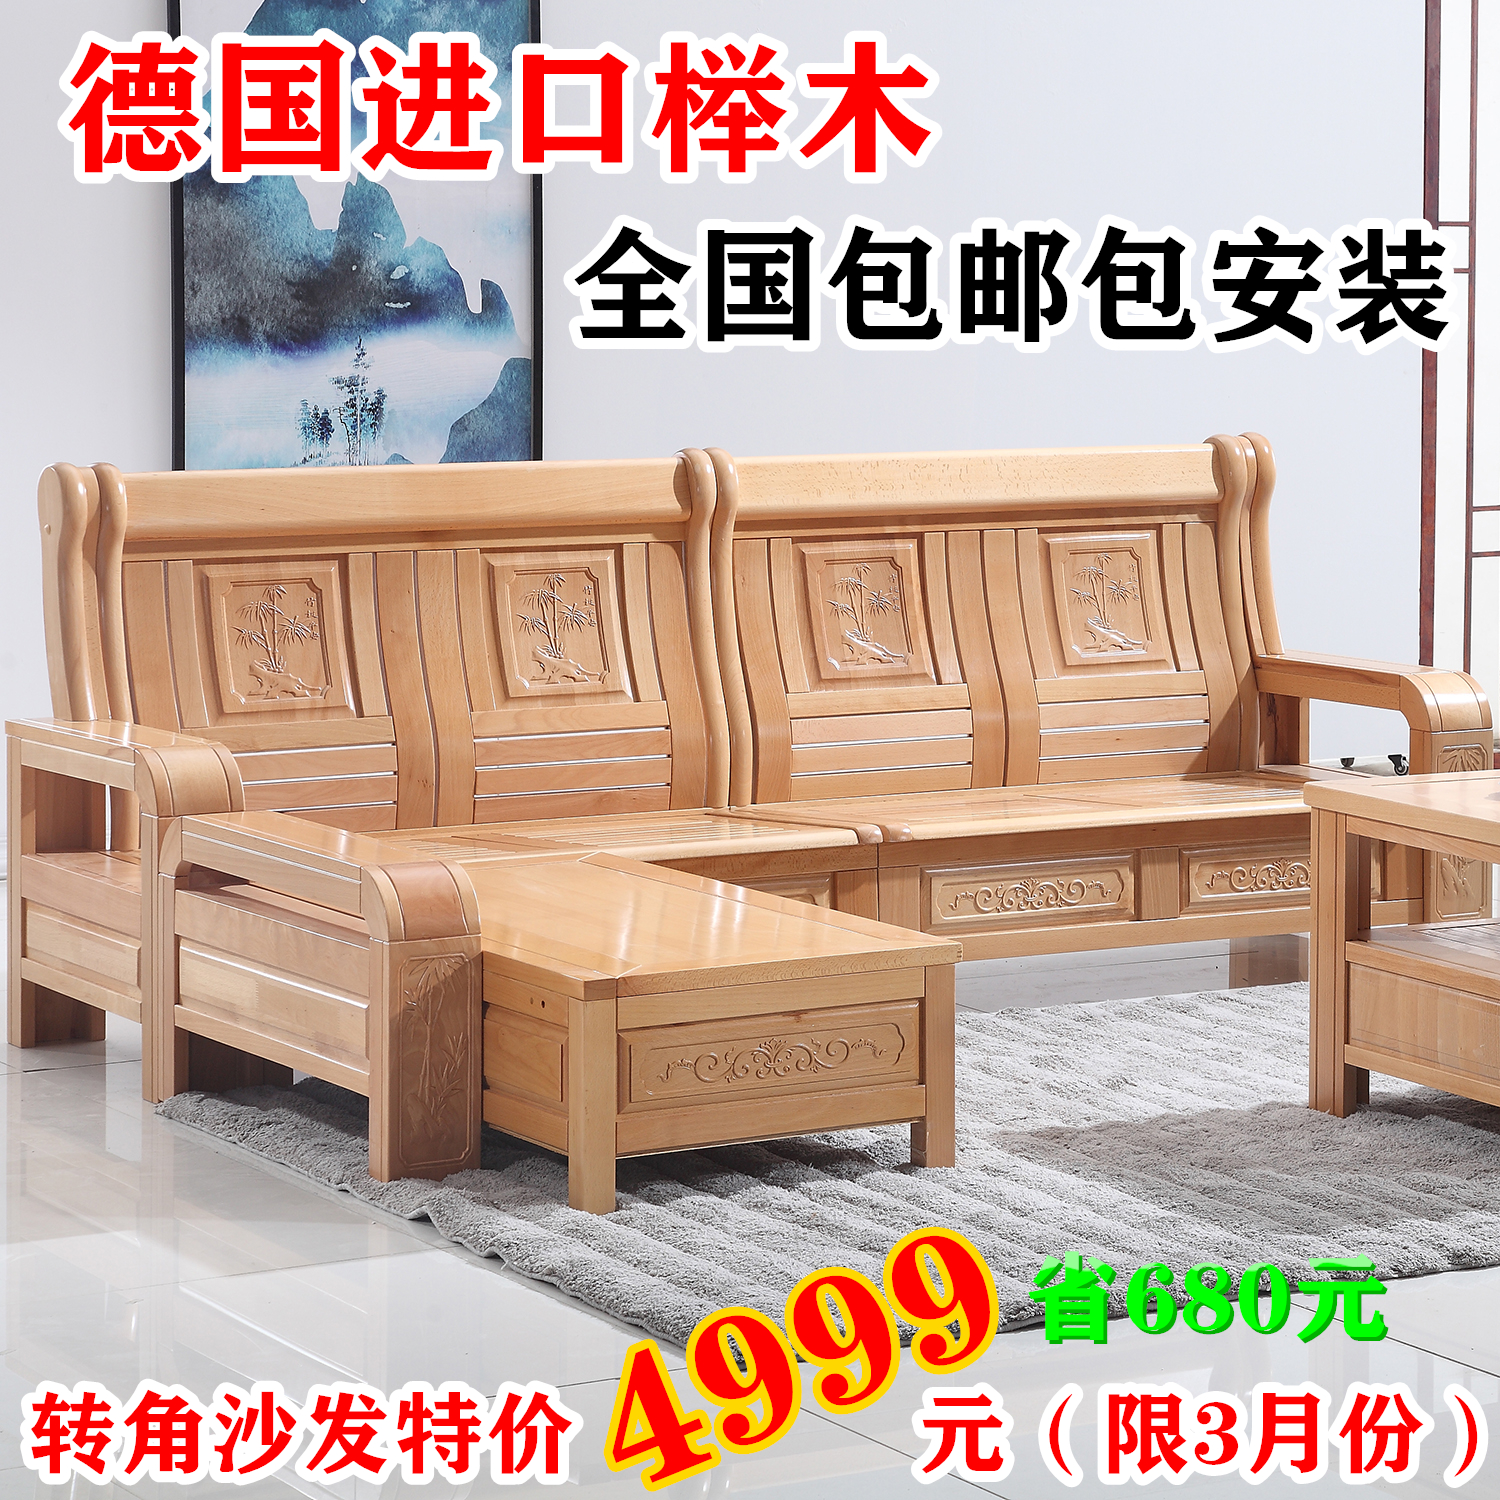 Mufu spring new beech corner lady with storage sofa small family tea table package special price